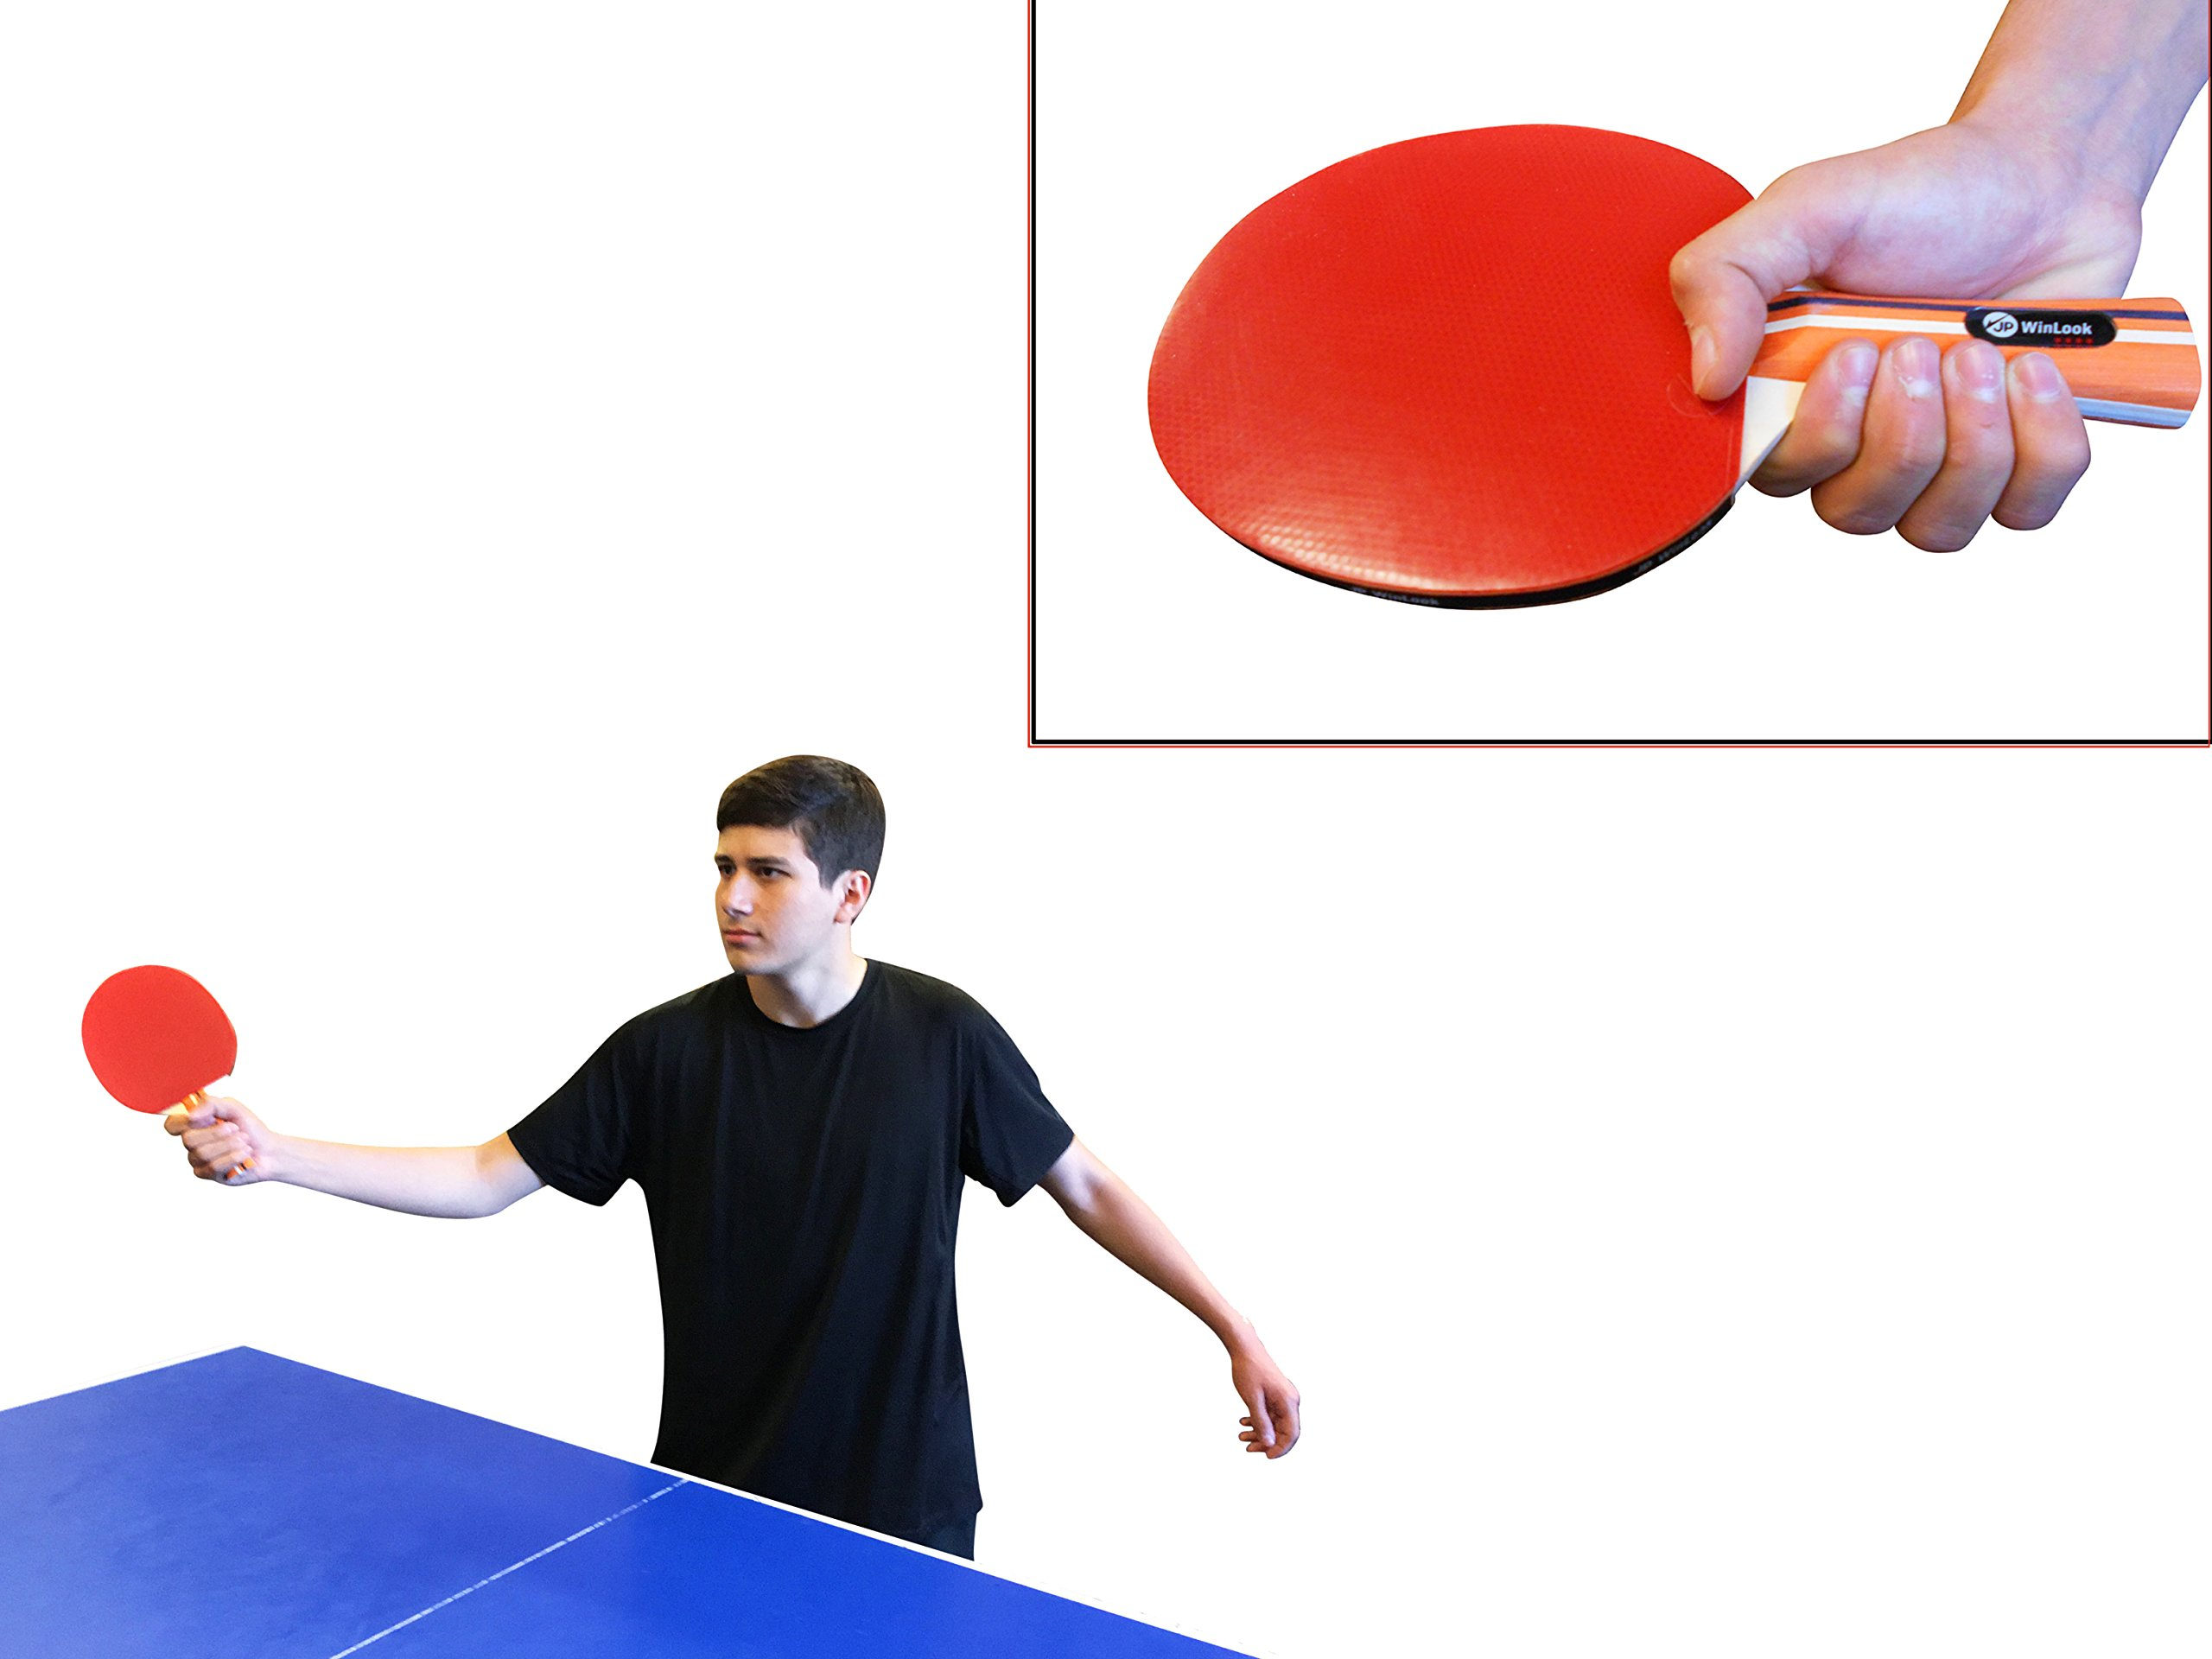 Jp Winlook Ping Pong Paddle 4 Pack Pro Premium Table